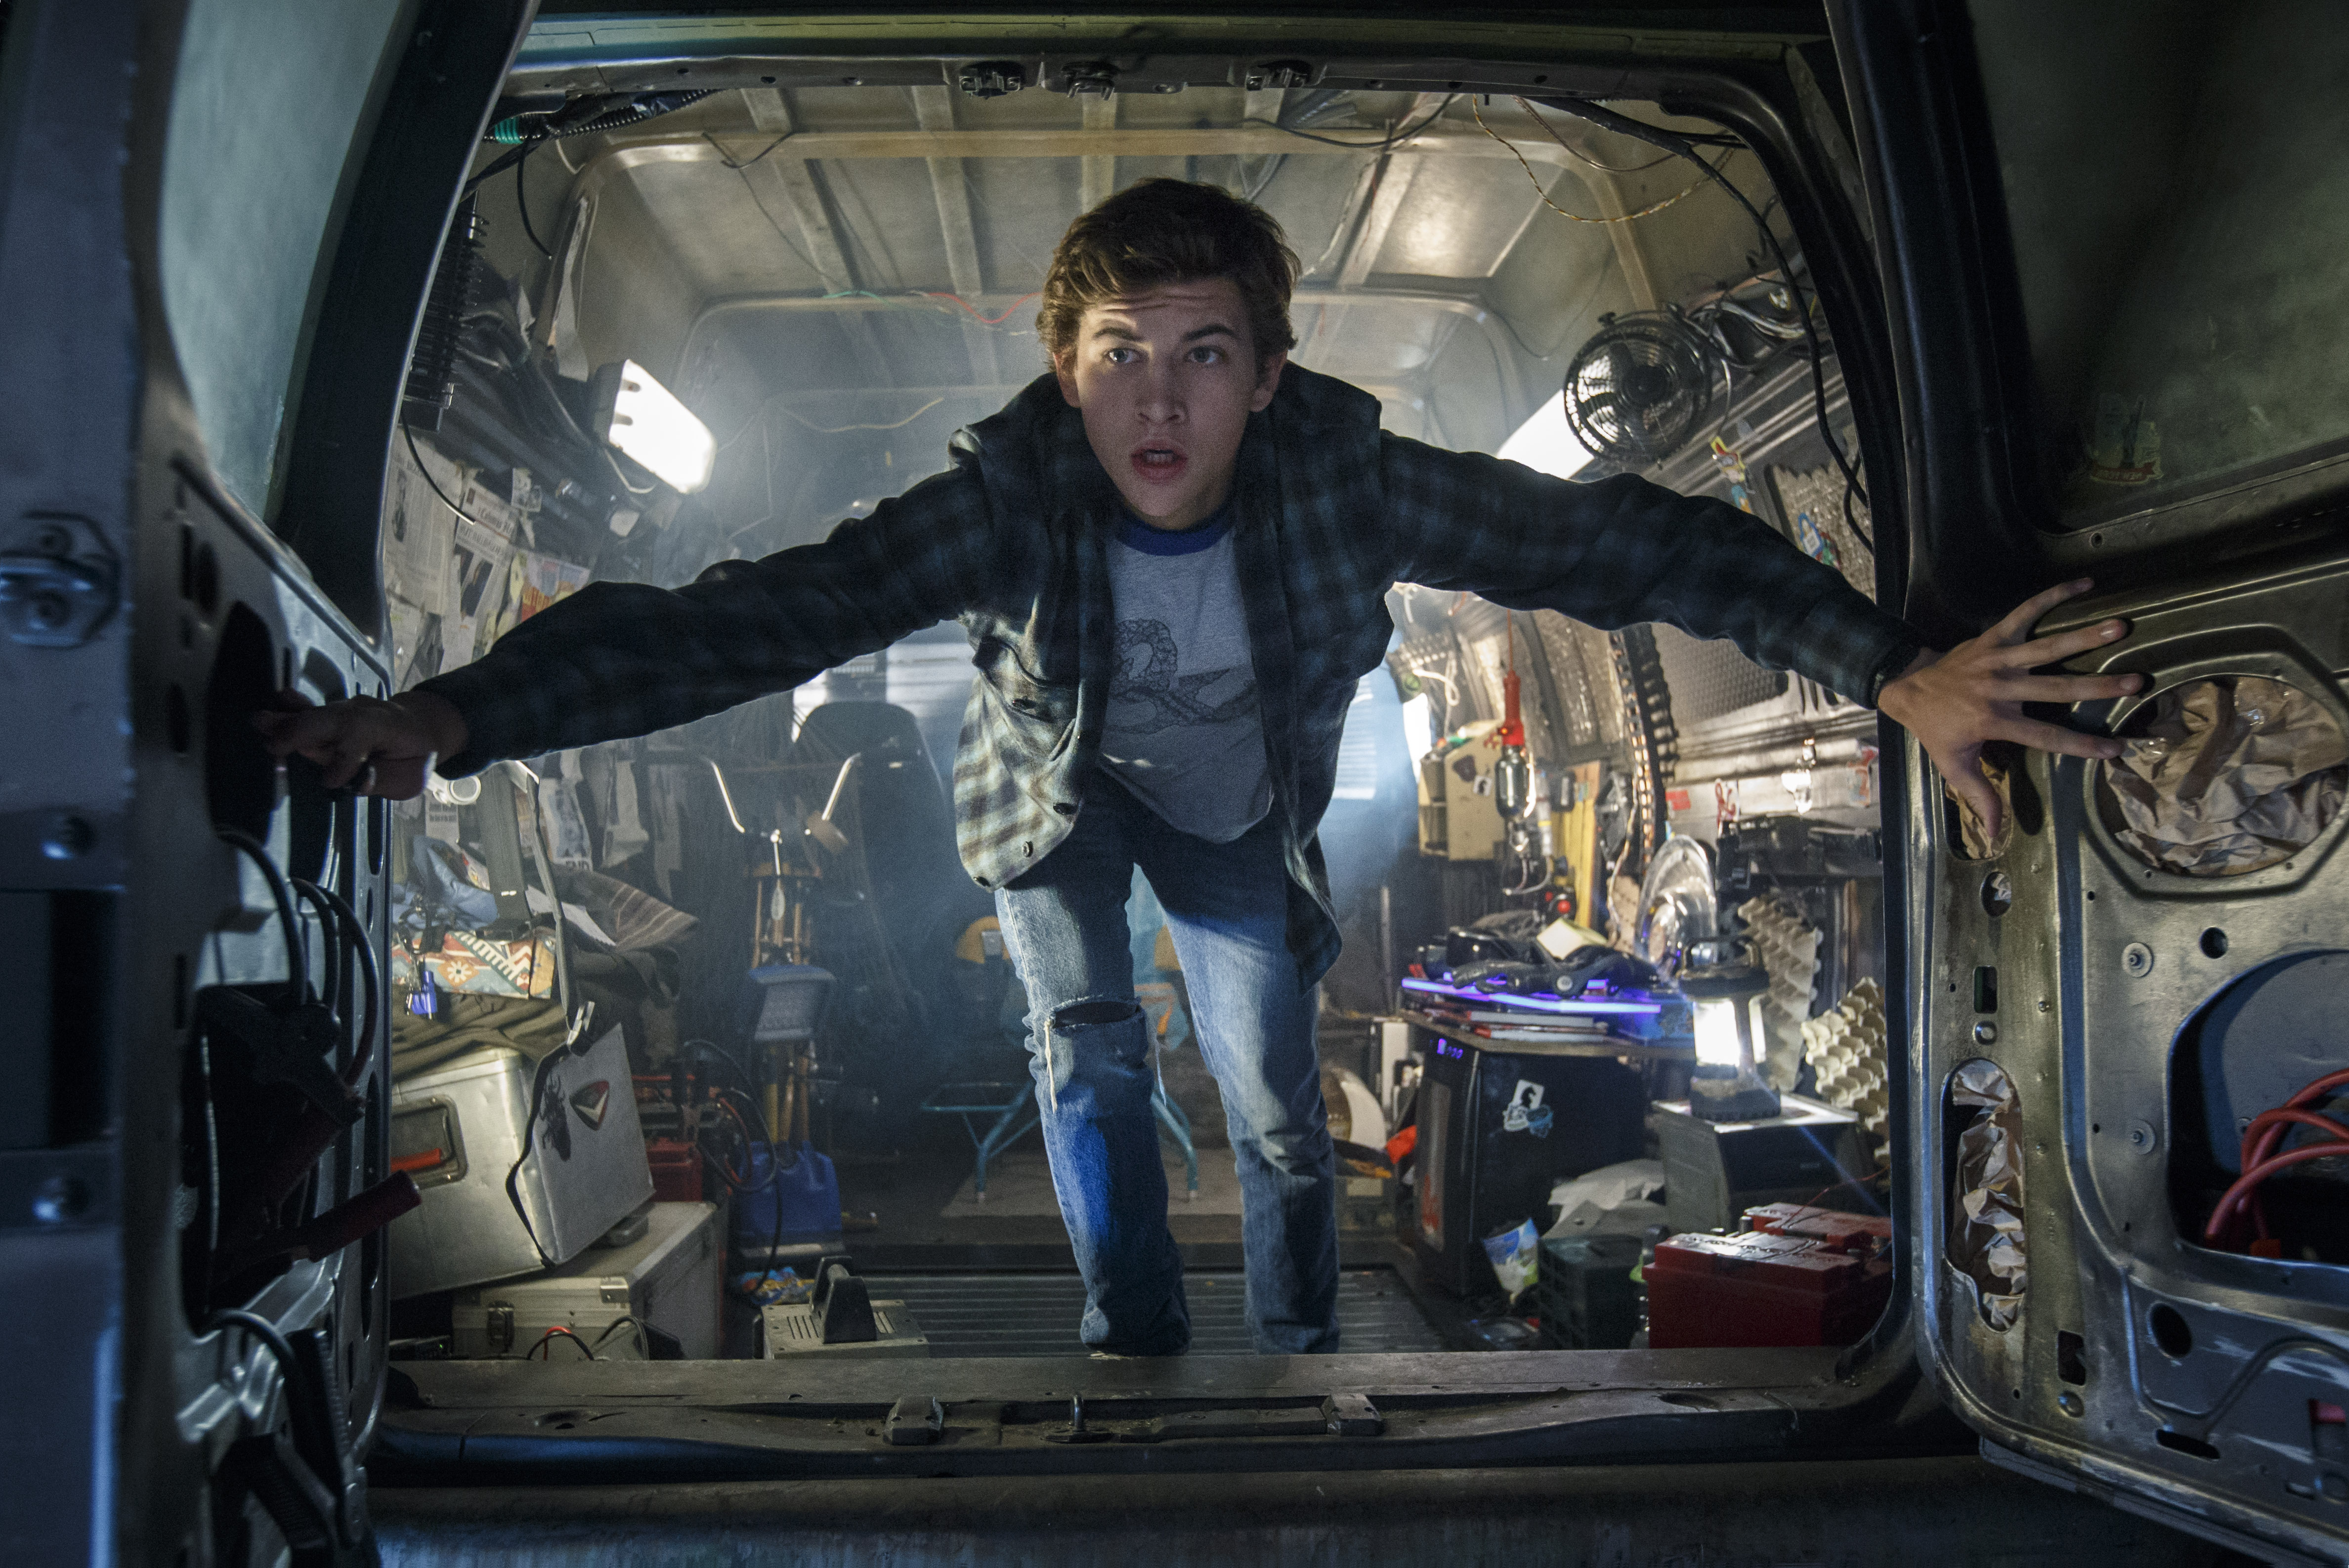 Wade (Tye Sheridan) is looking for the Easter Egg in Ready Player One